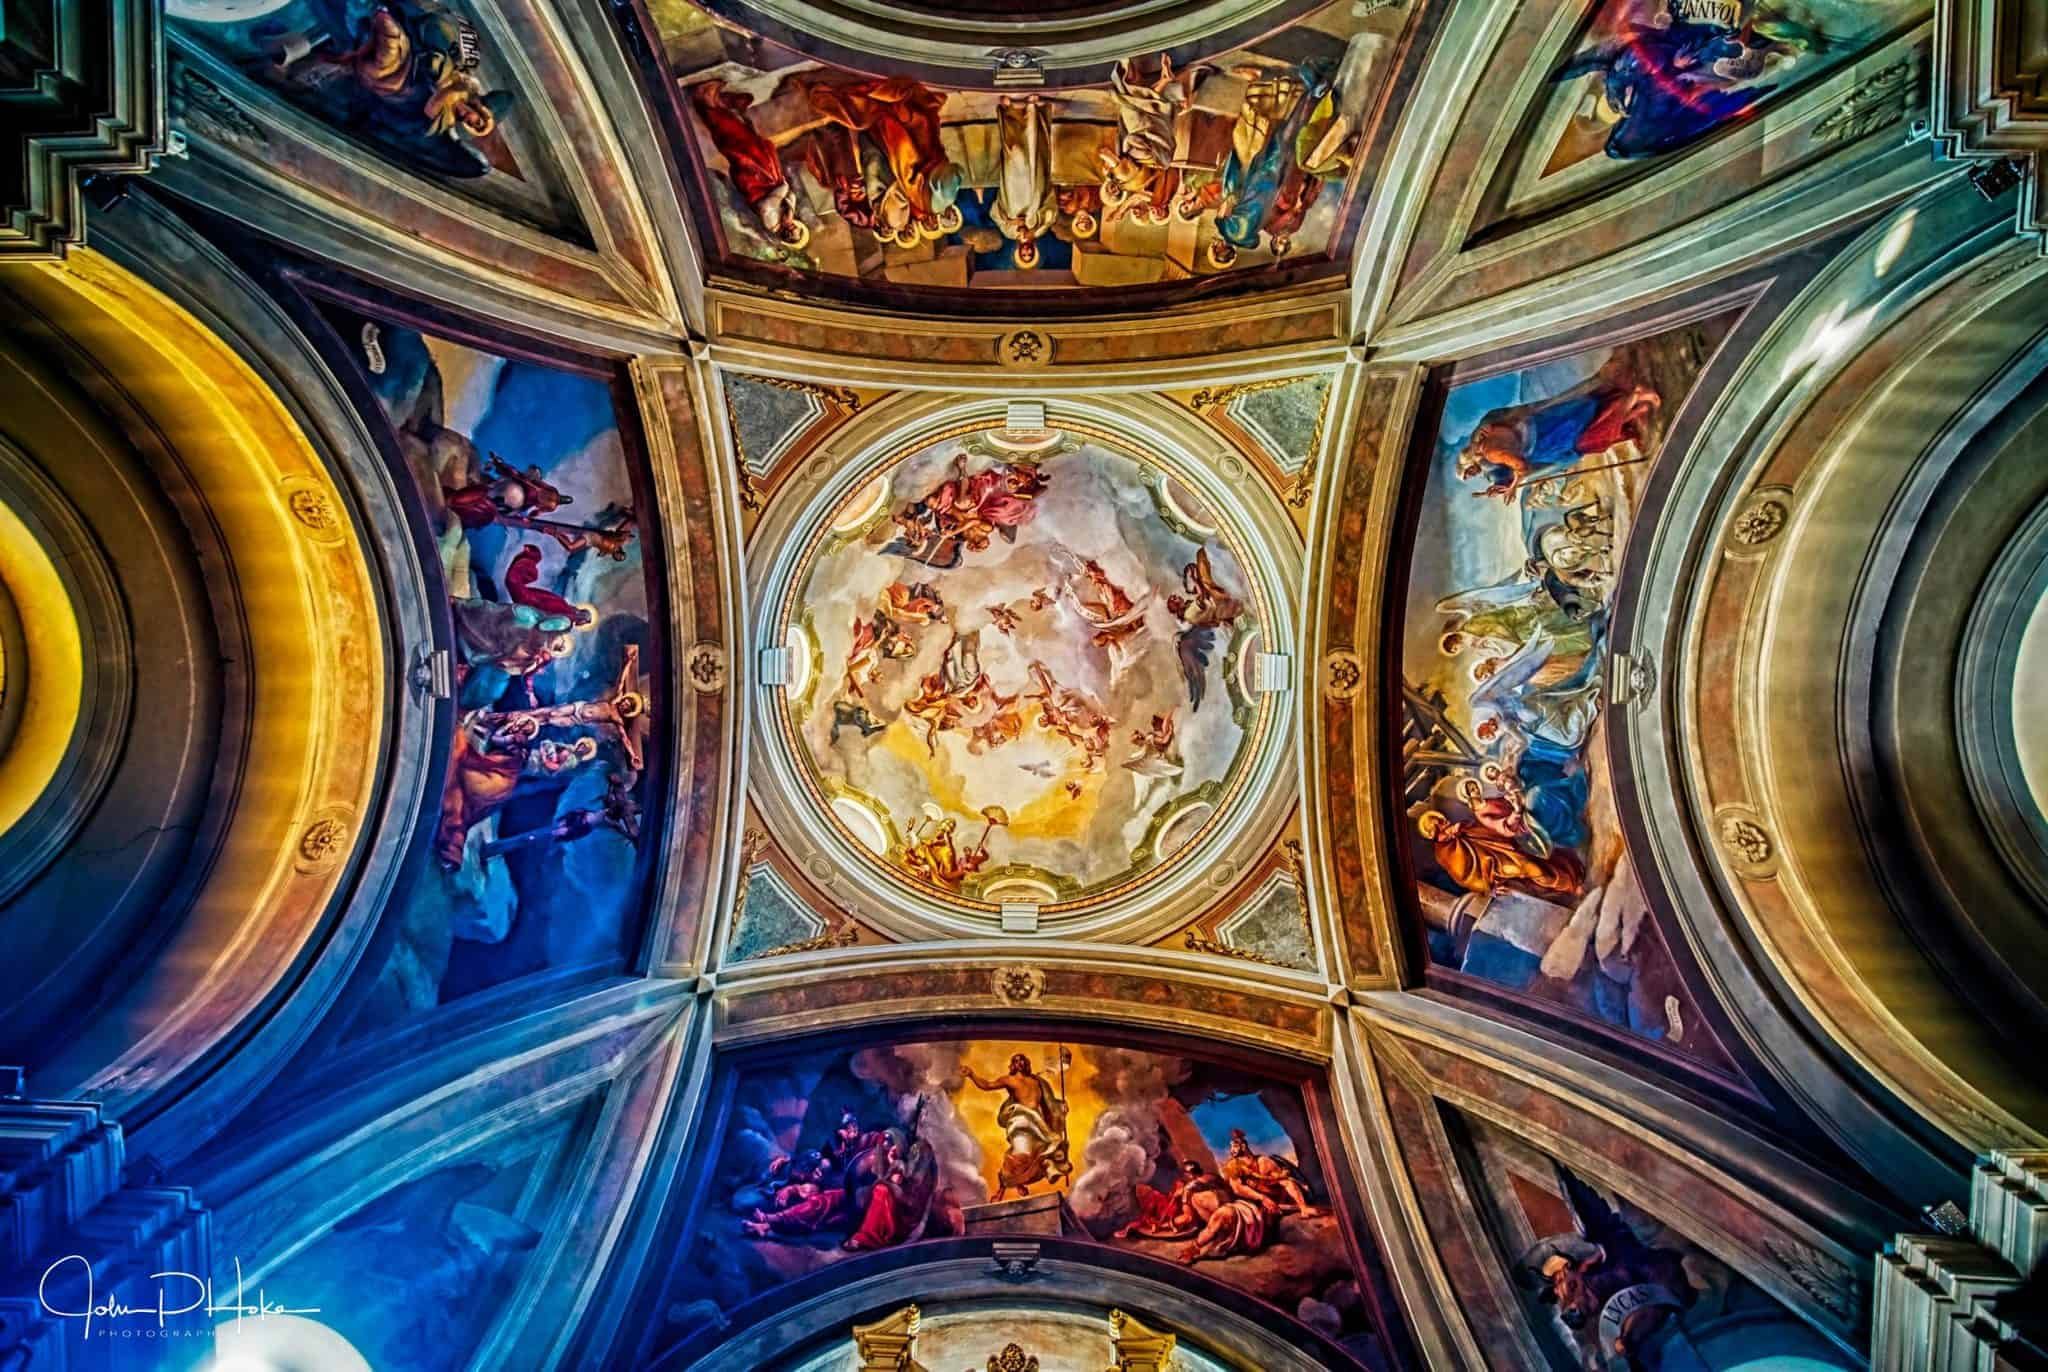 HDR Image of the ceiling of the Como Chapel outside of Milan Italy